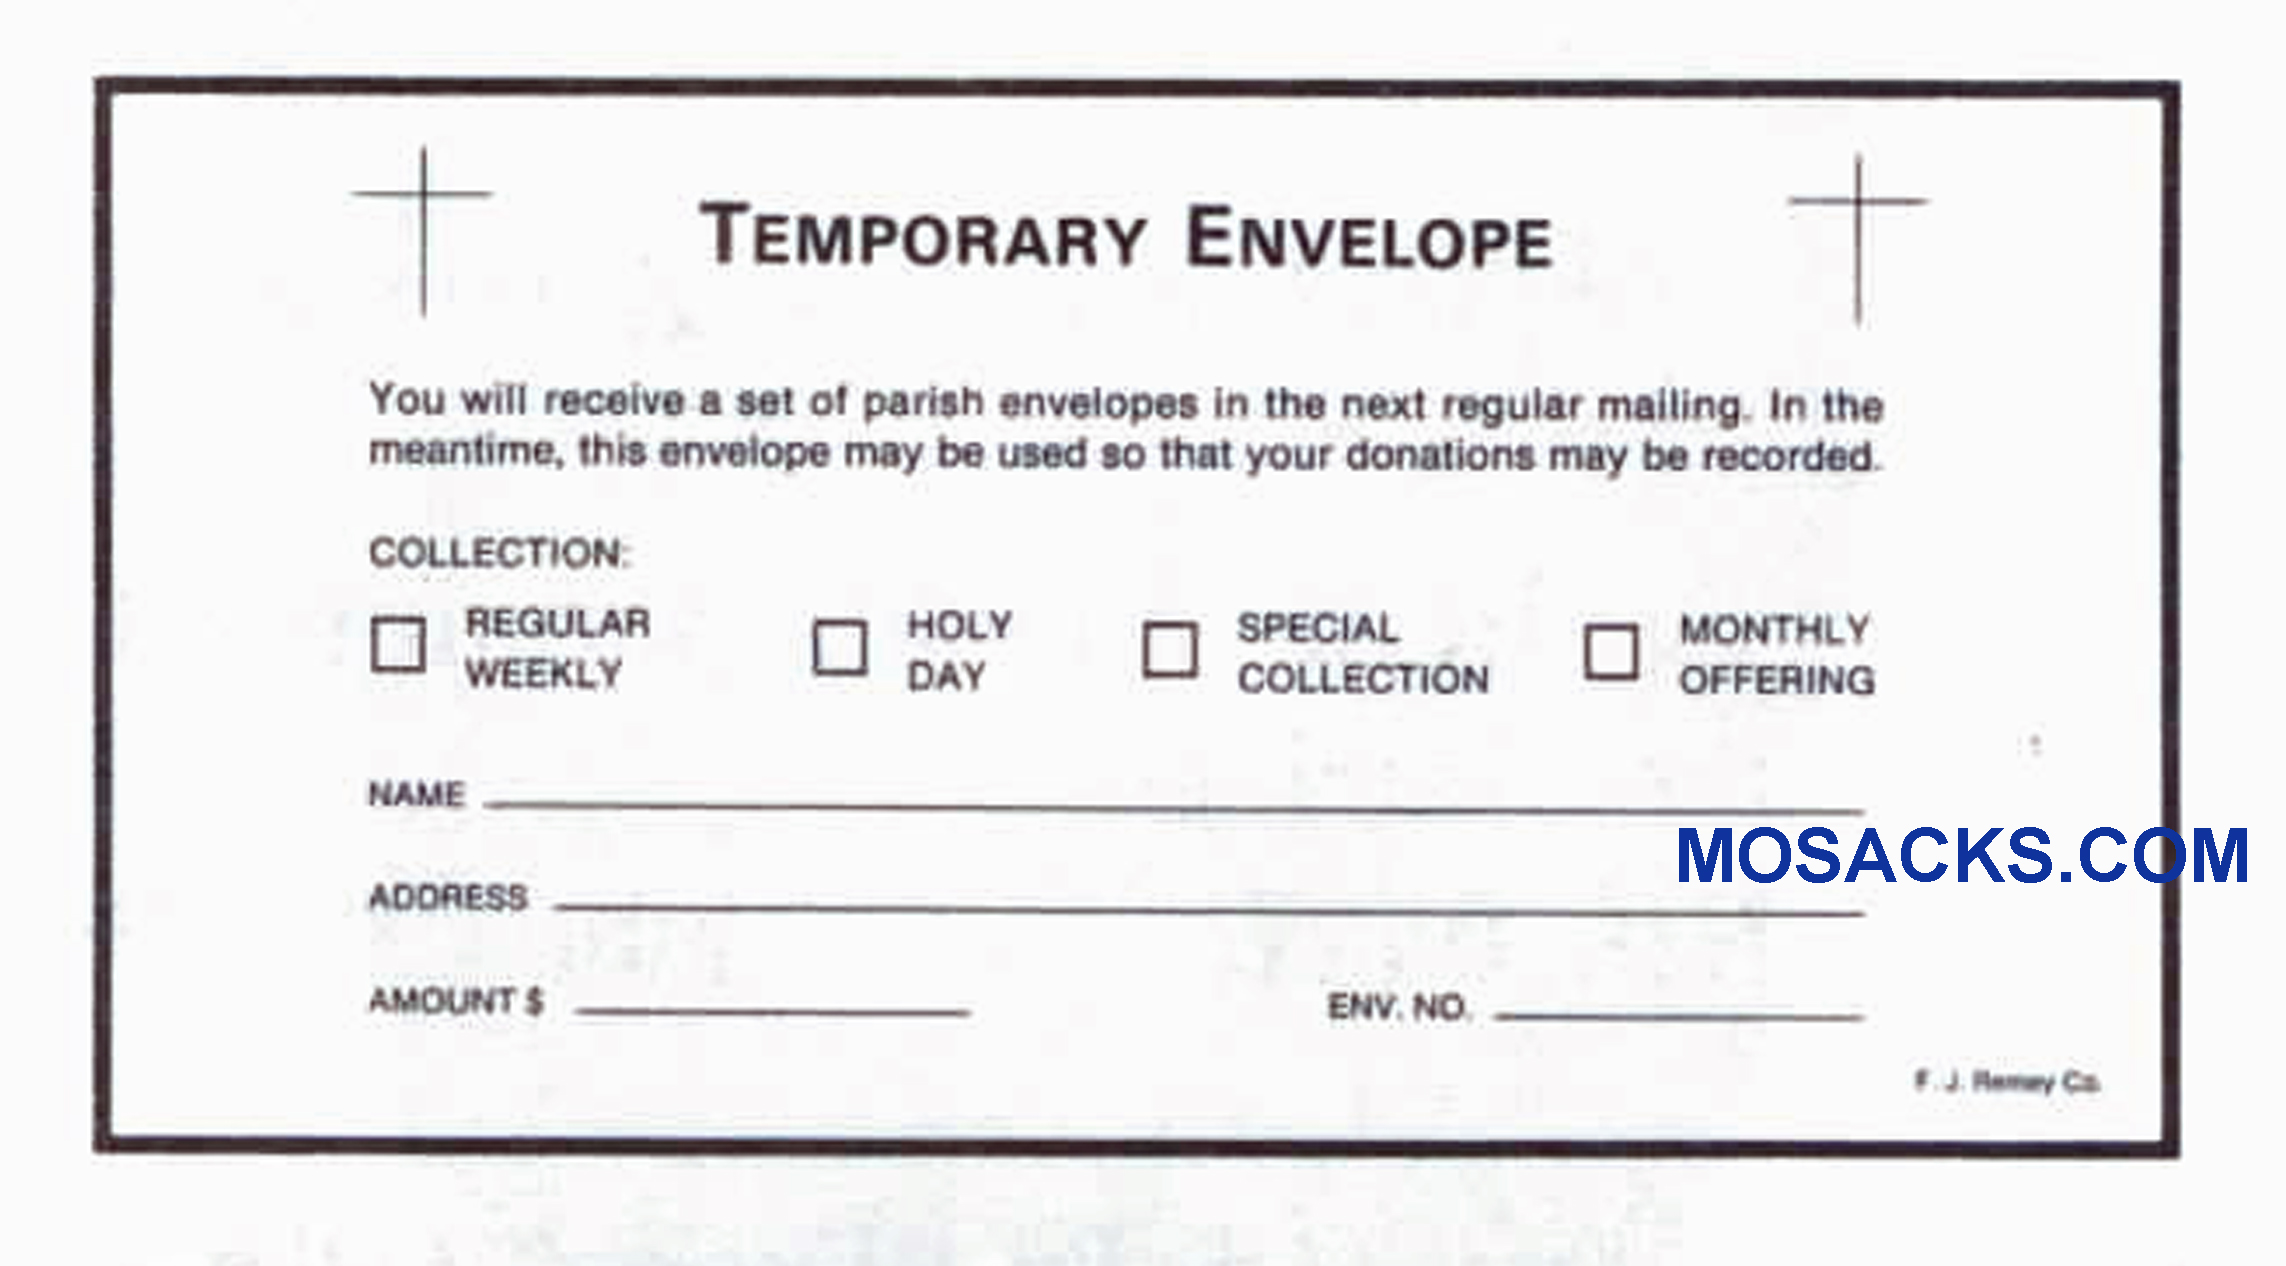 Temporary Envelope 6-1/4 x 3-1/8 Church Offering Envelope #304-383